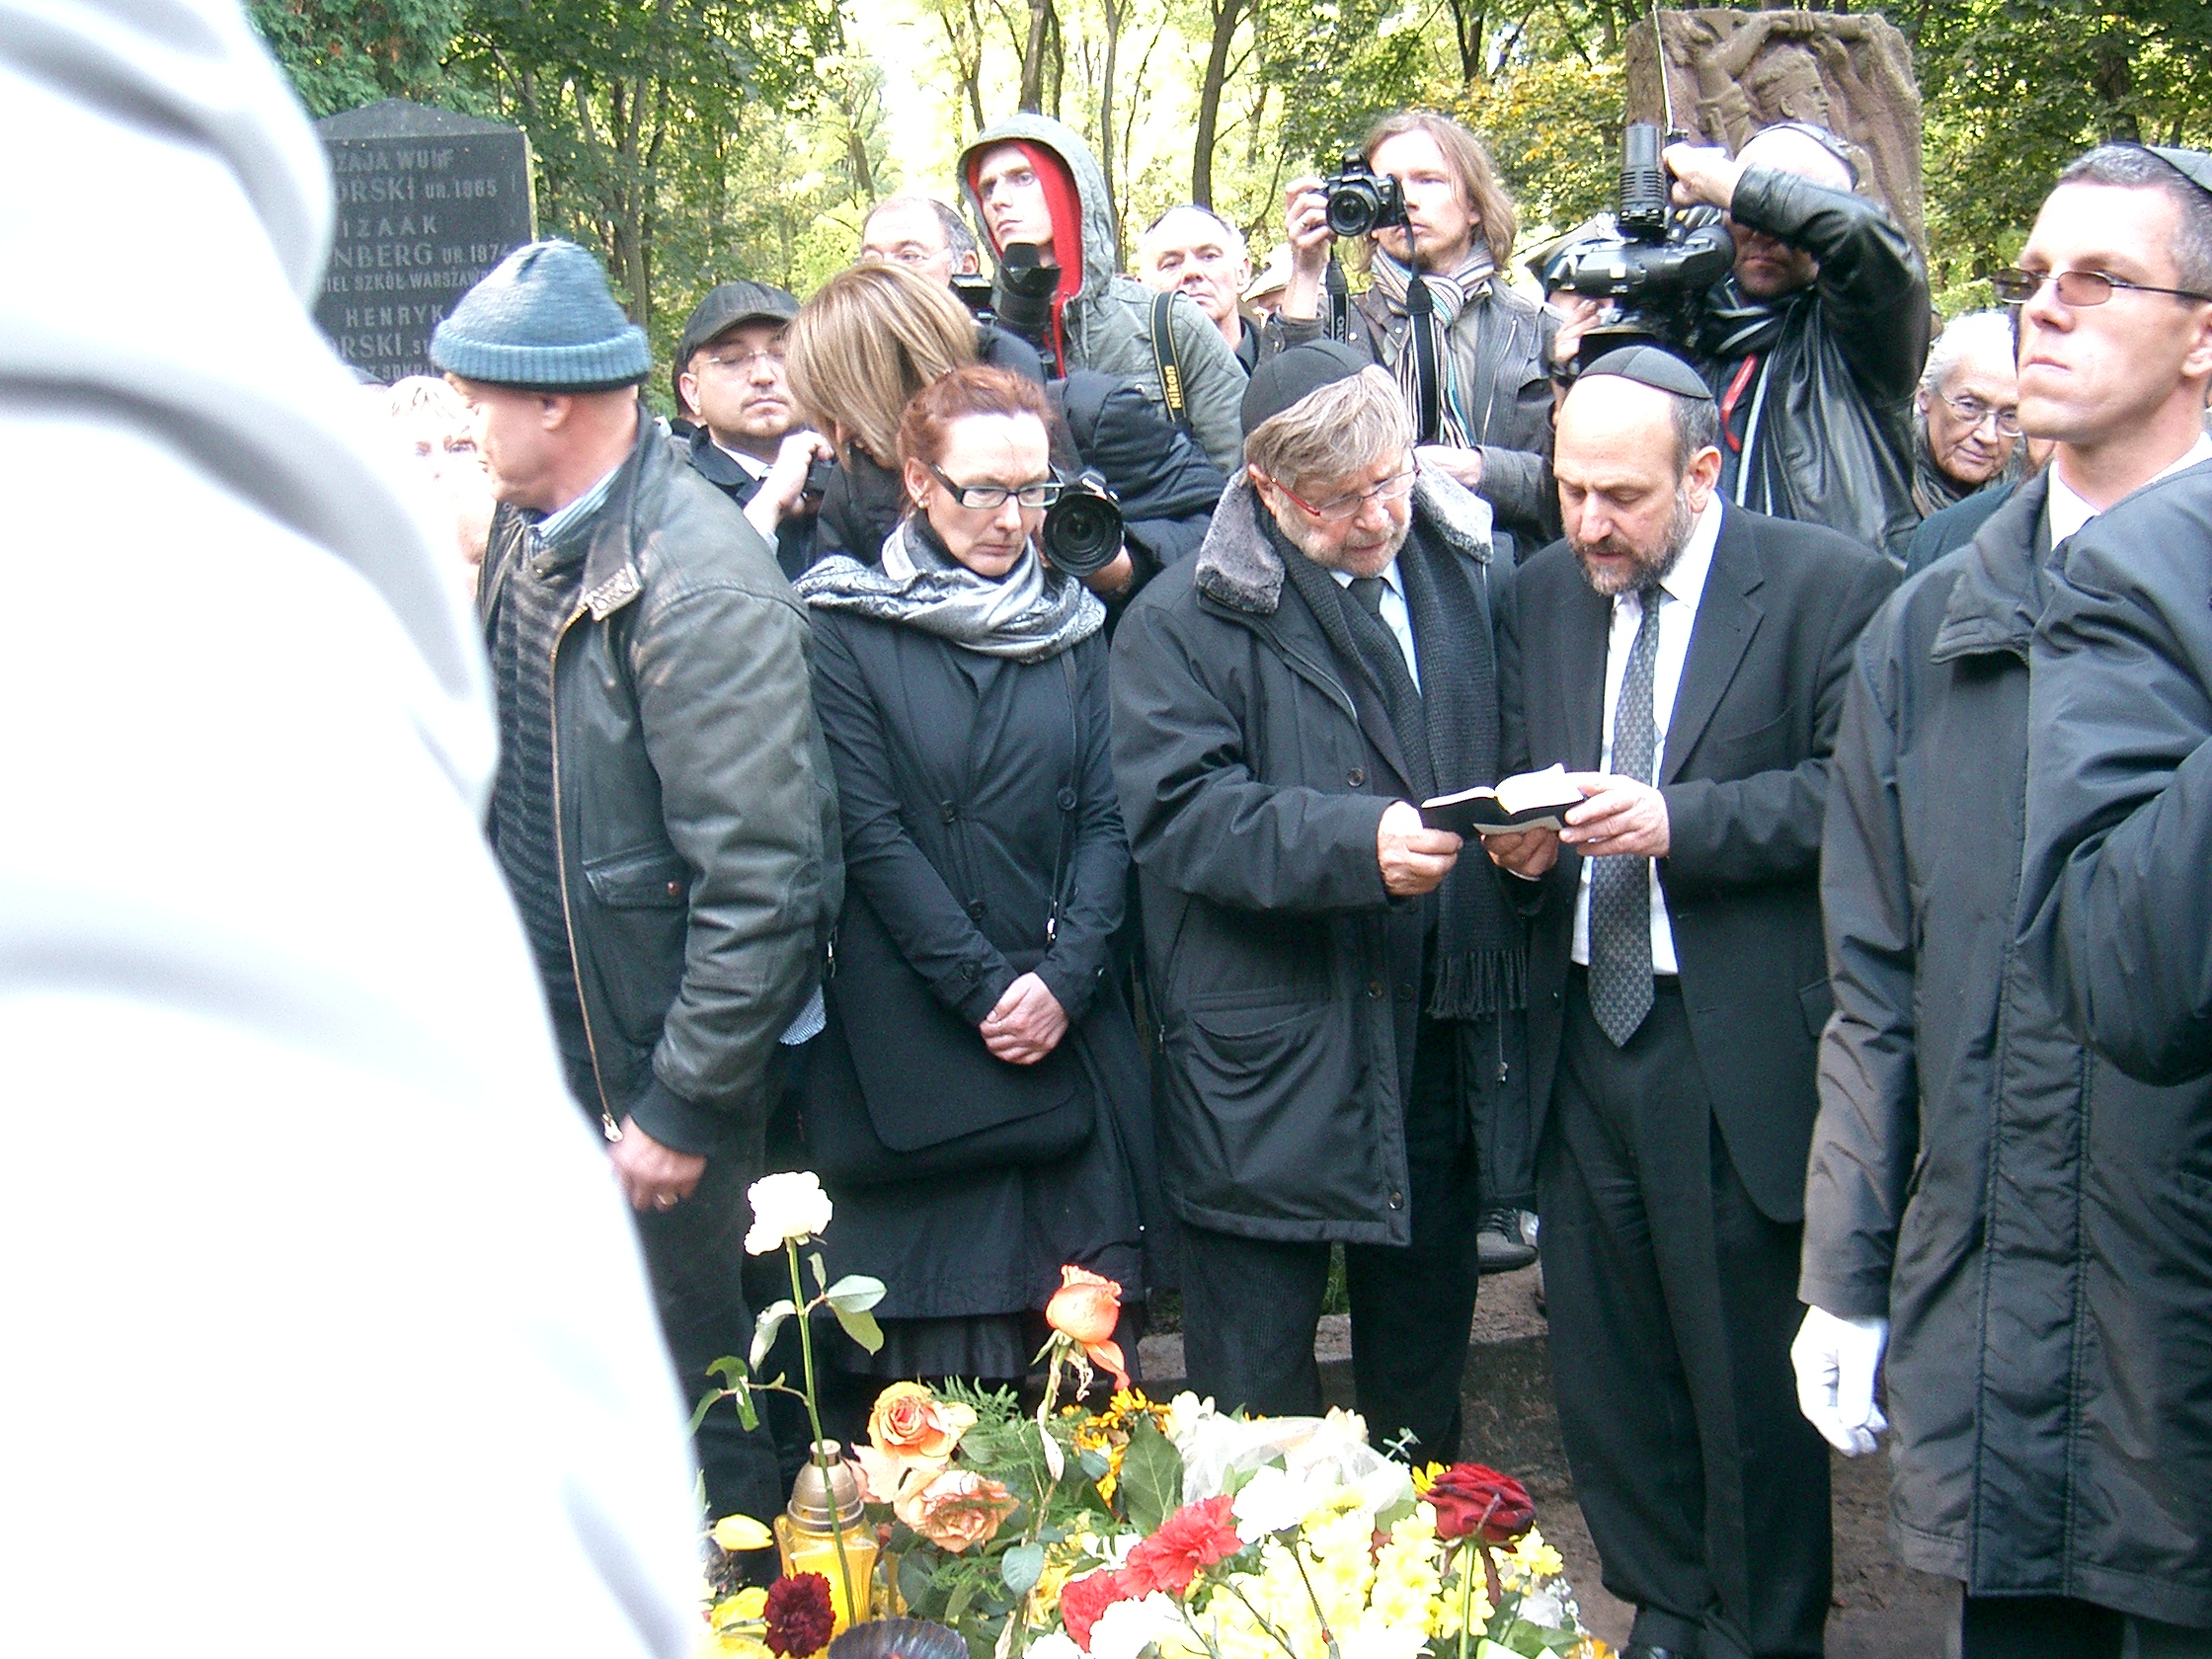 https://upload.wikimedia.org/wikipedia/commons/2/25/Marek_Edelman%27s_funeral_Warsaw_October09_2009_CIMG7528.JPG